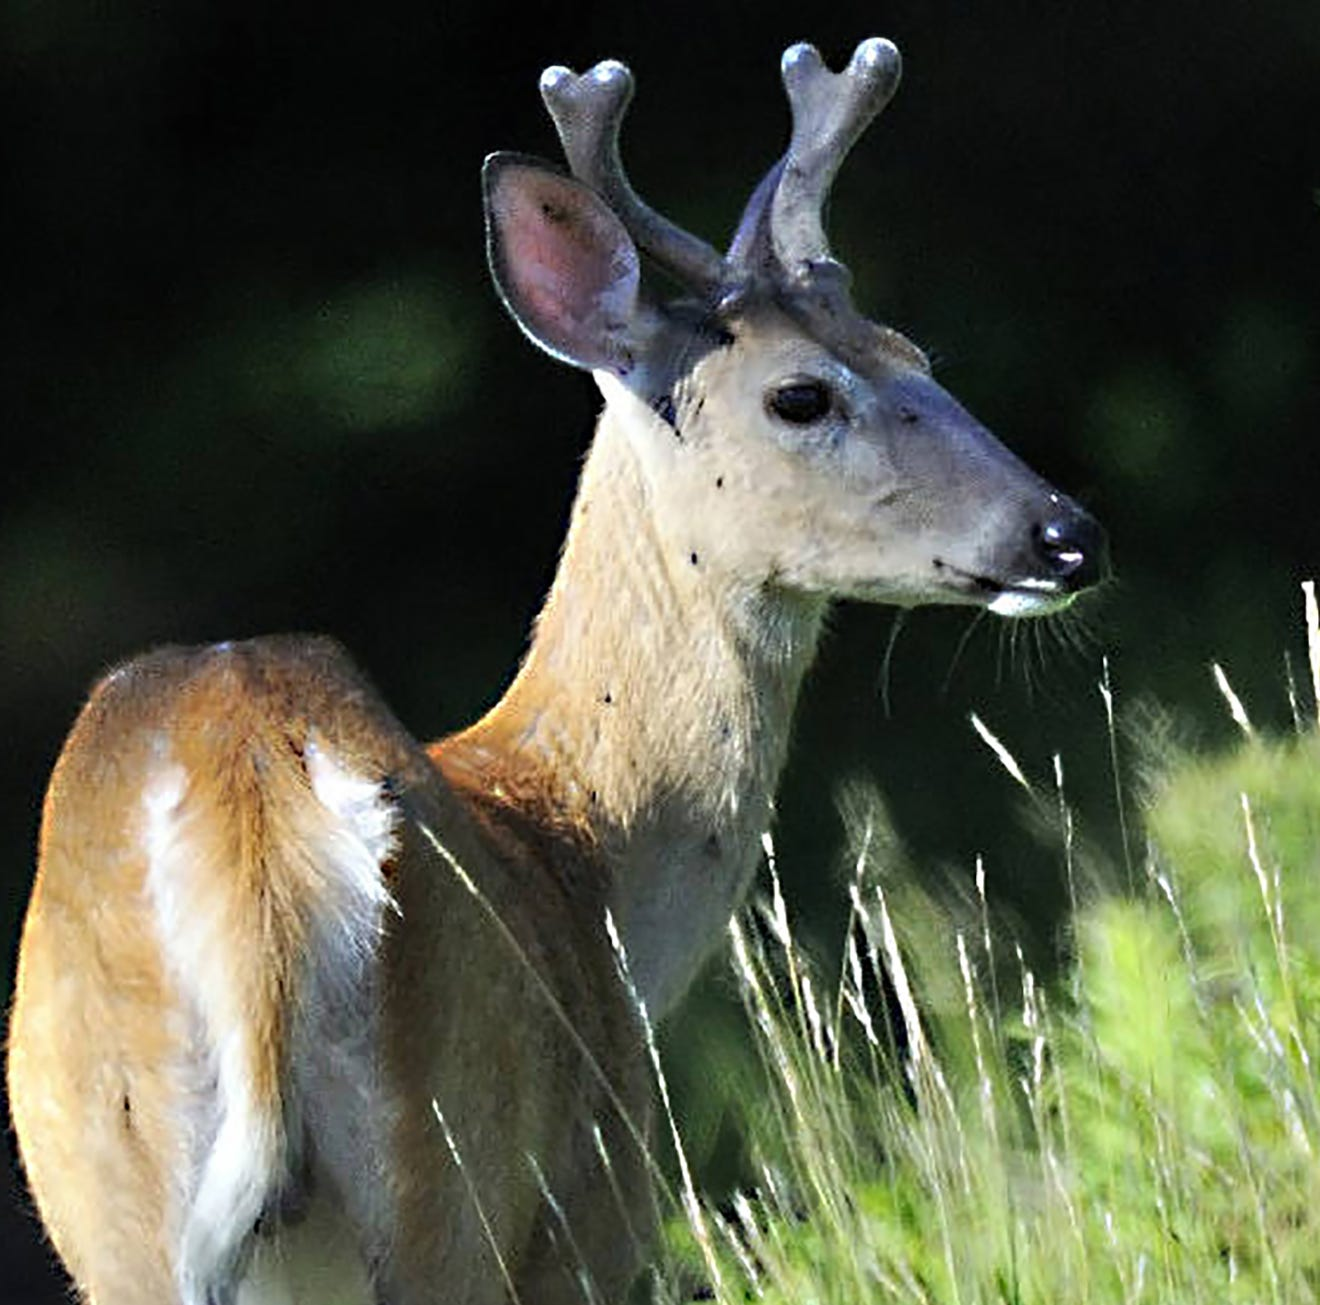 Portage County deer tests positive for CWD. Hunt ranch and breeding farm quarantined.